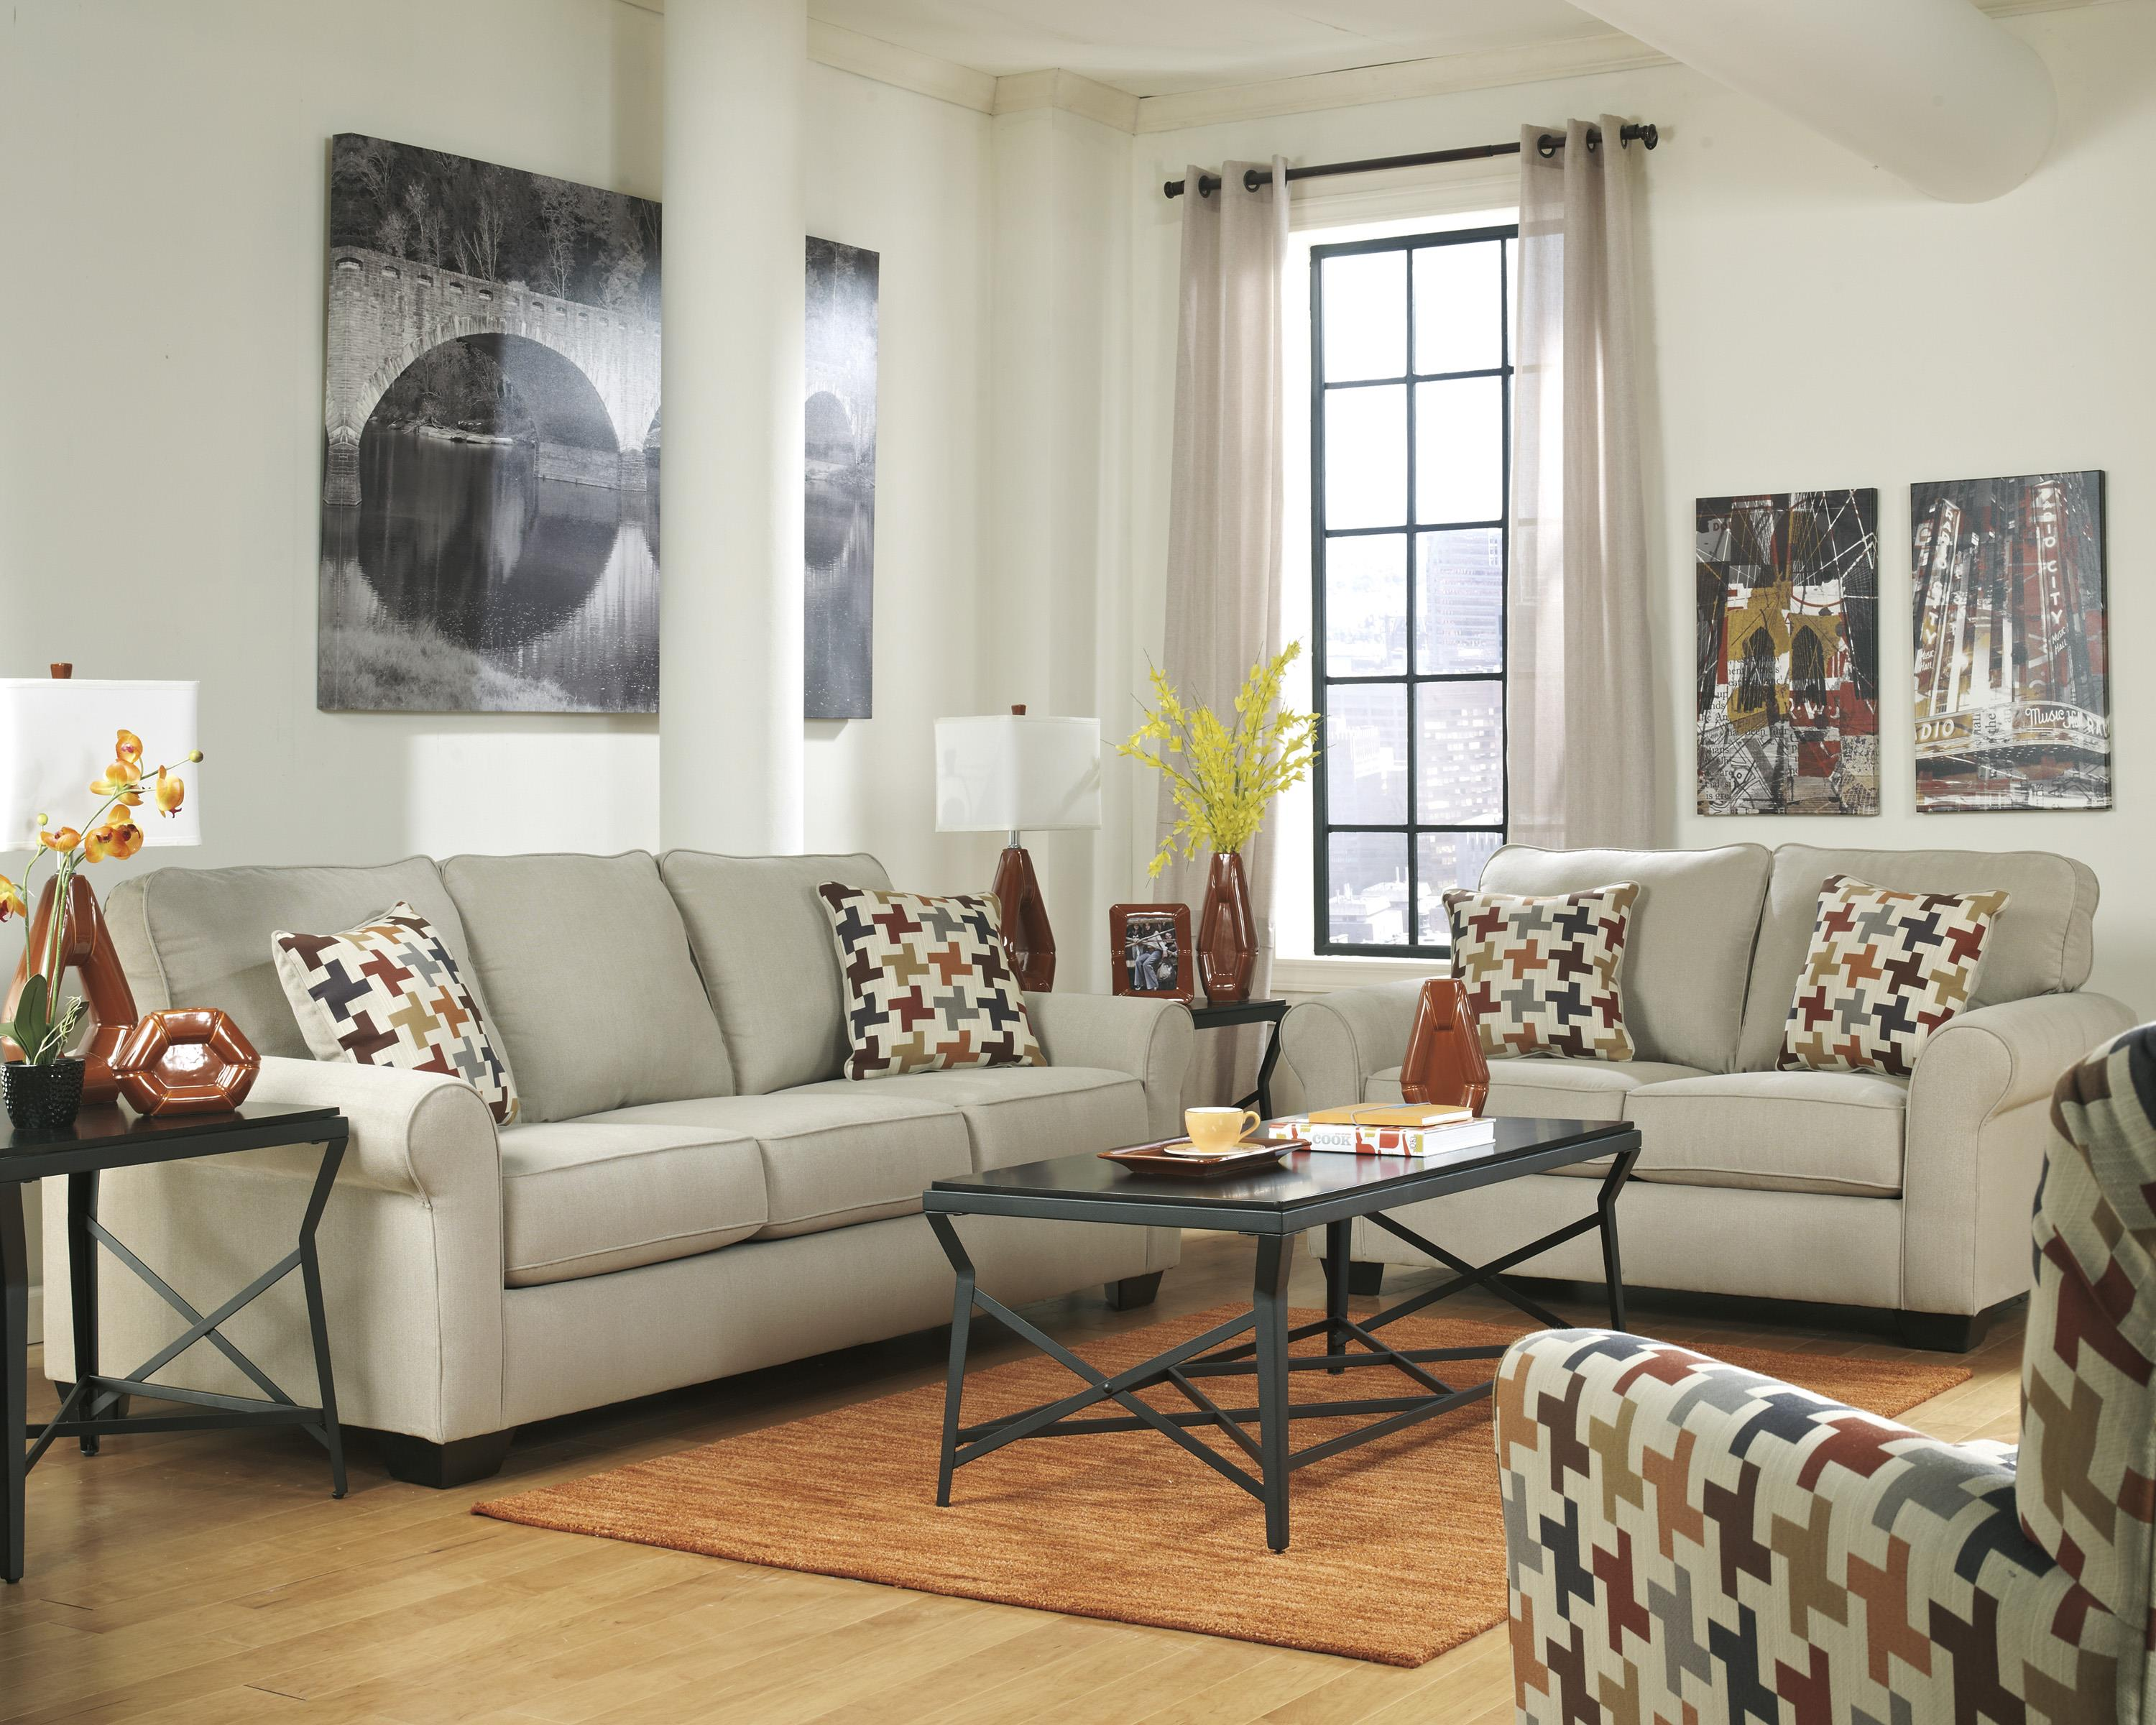 Ashley Furniture Caci Stationary Living Room Group - Item Number: 88202 Living Room Group 3